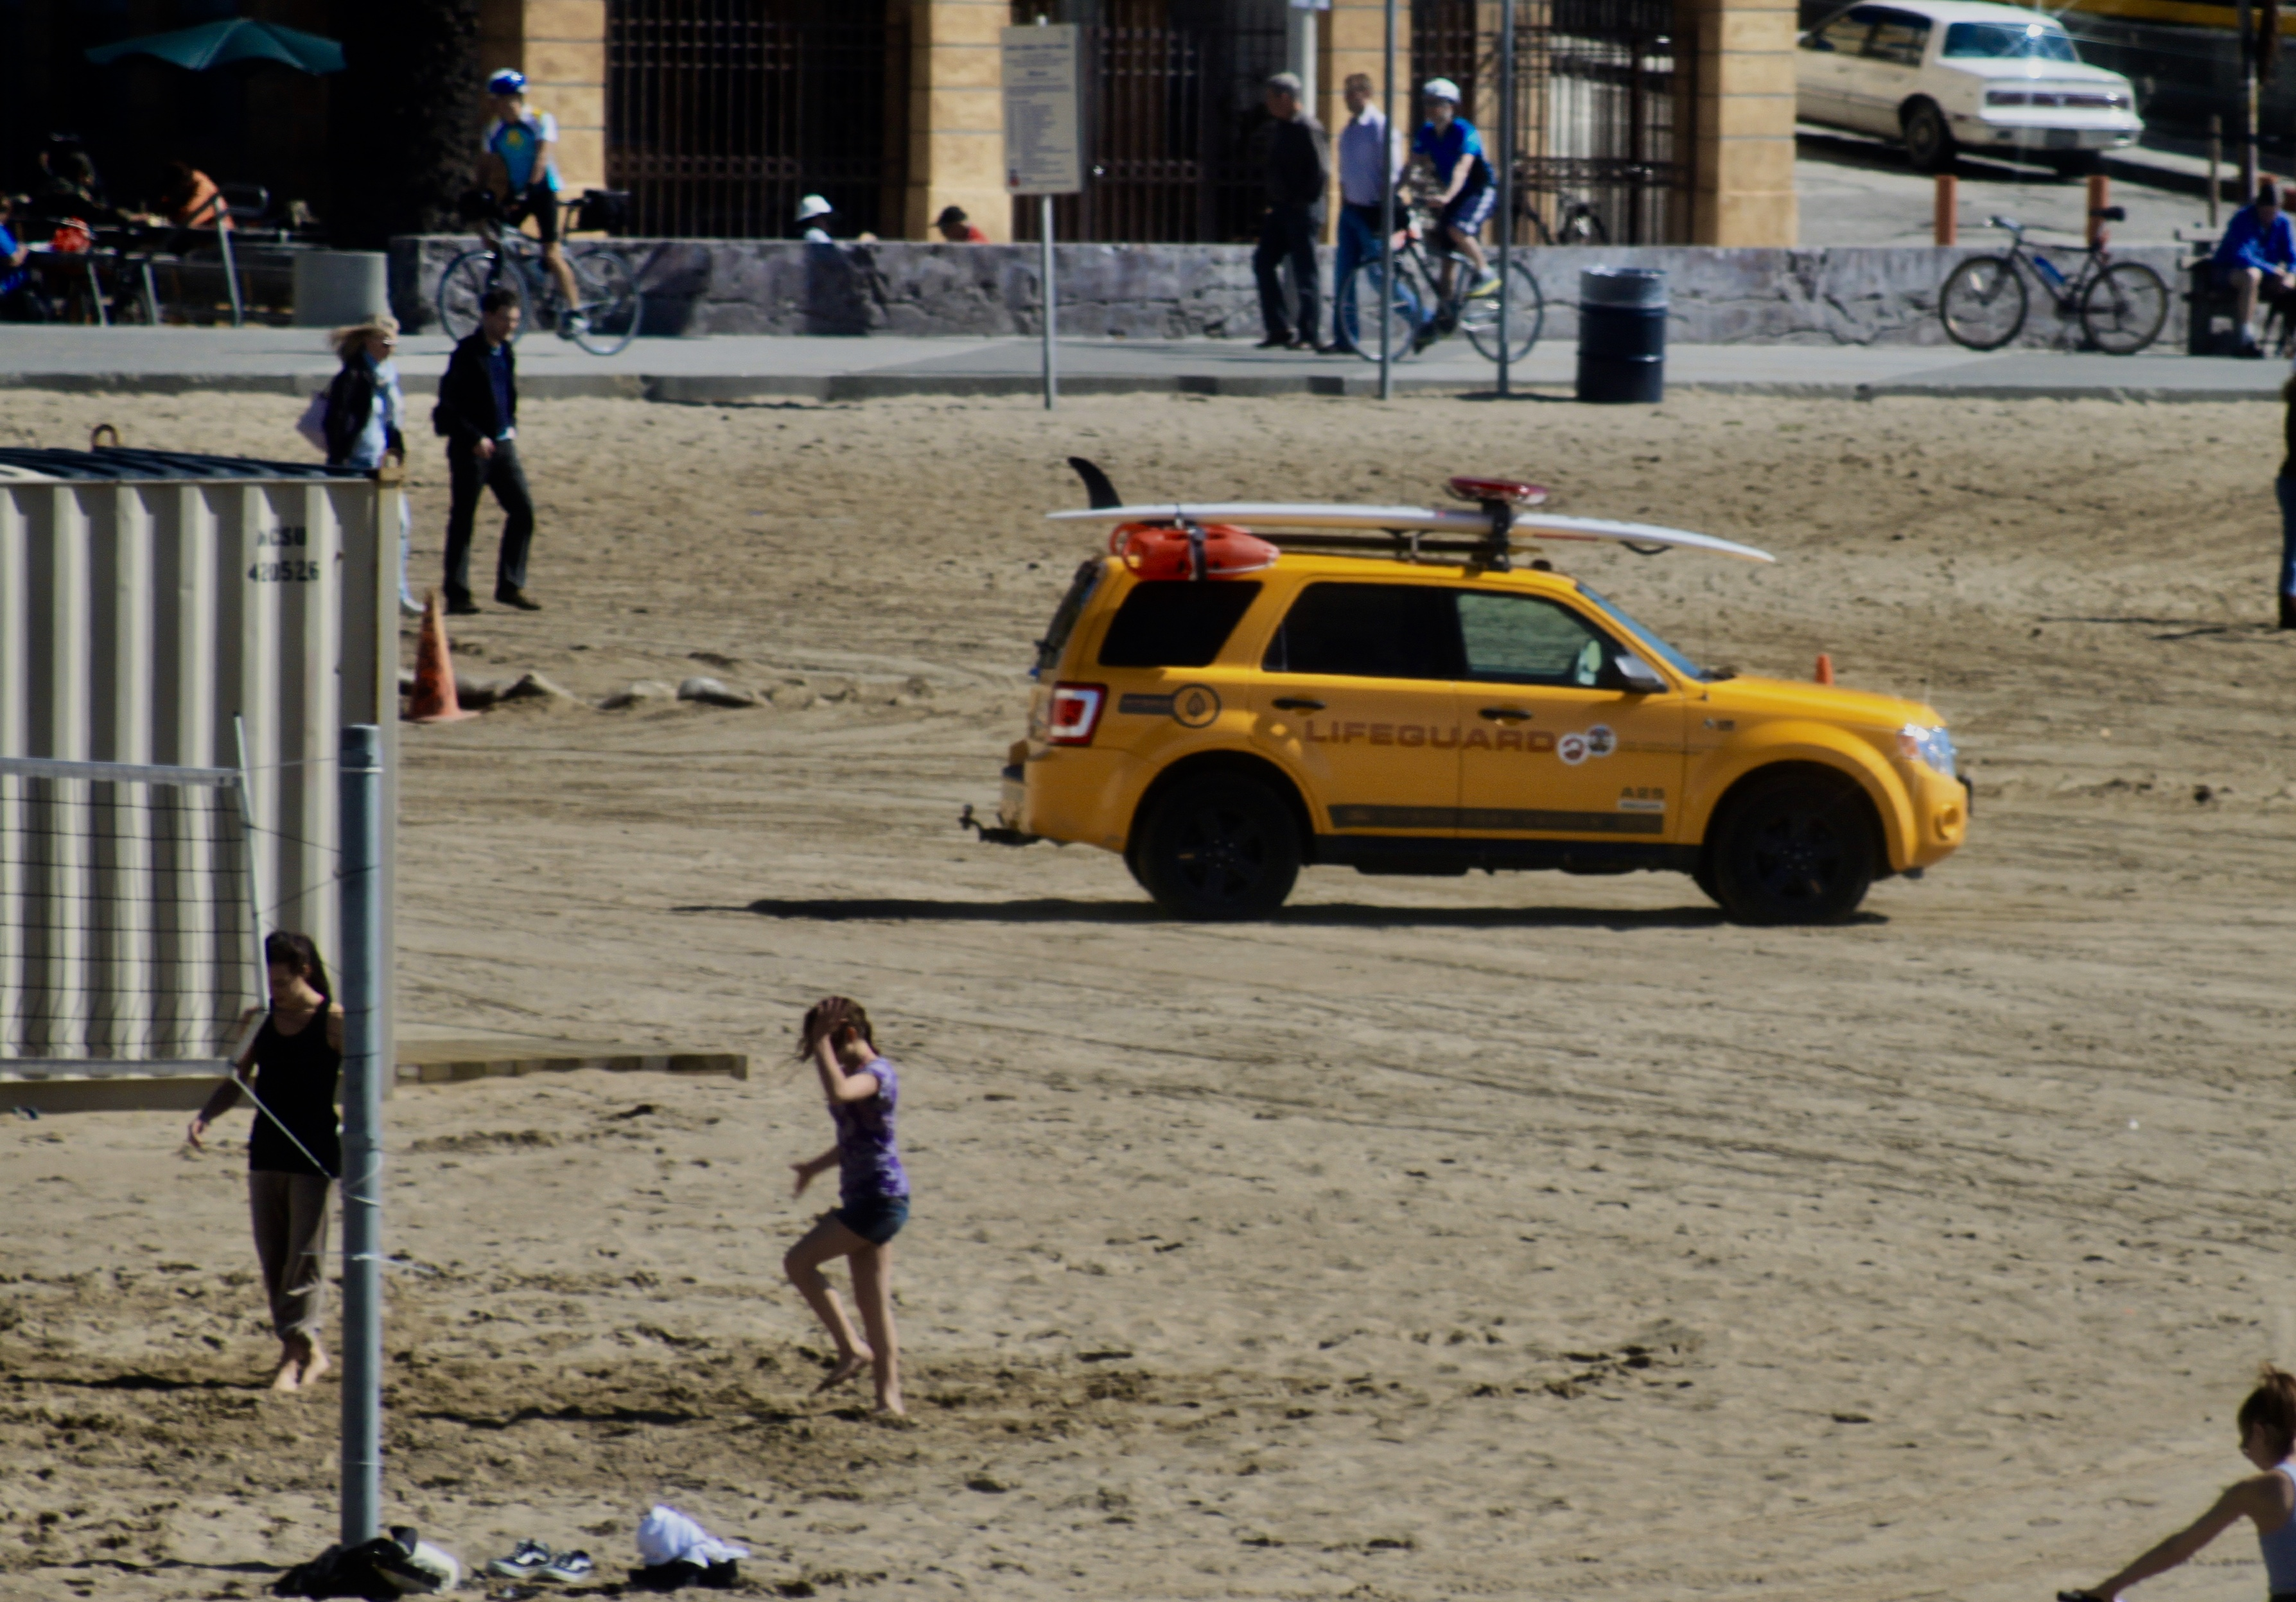 Lifeguard vehicle on Santa Monica Beach